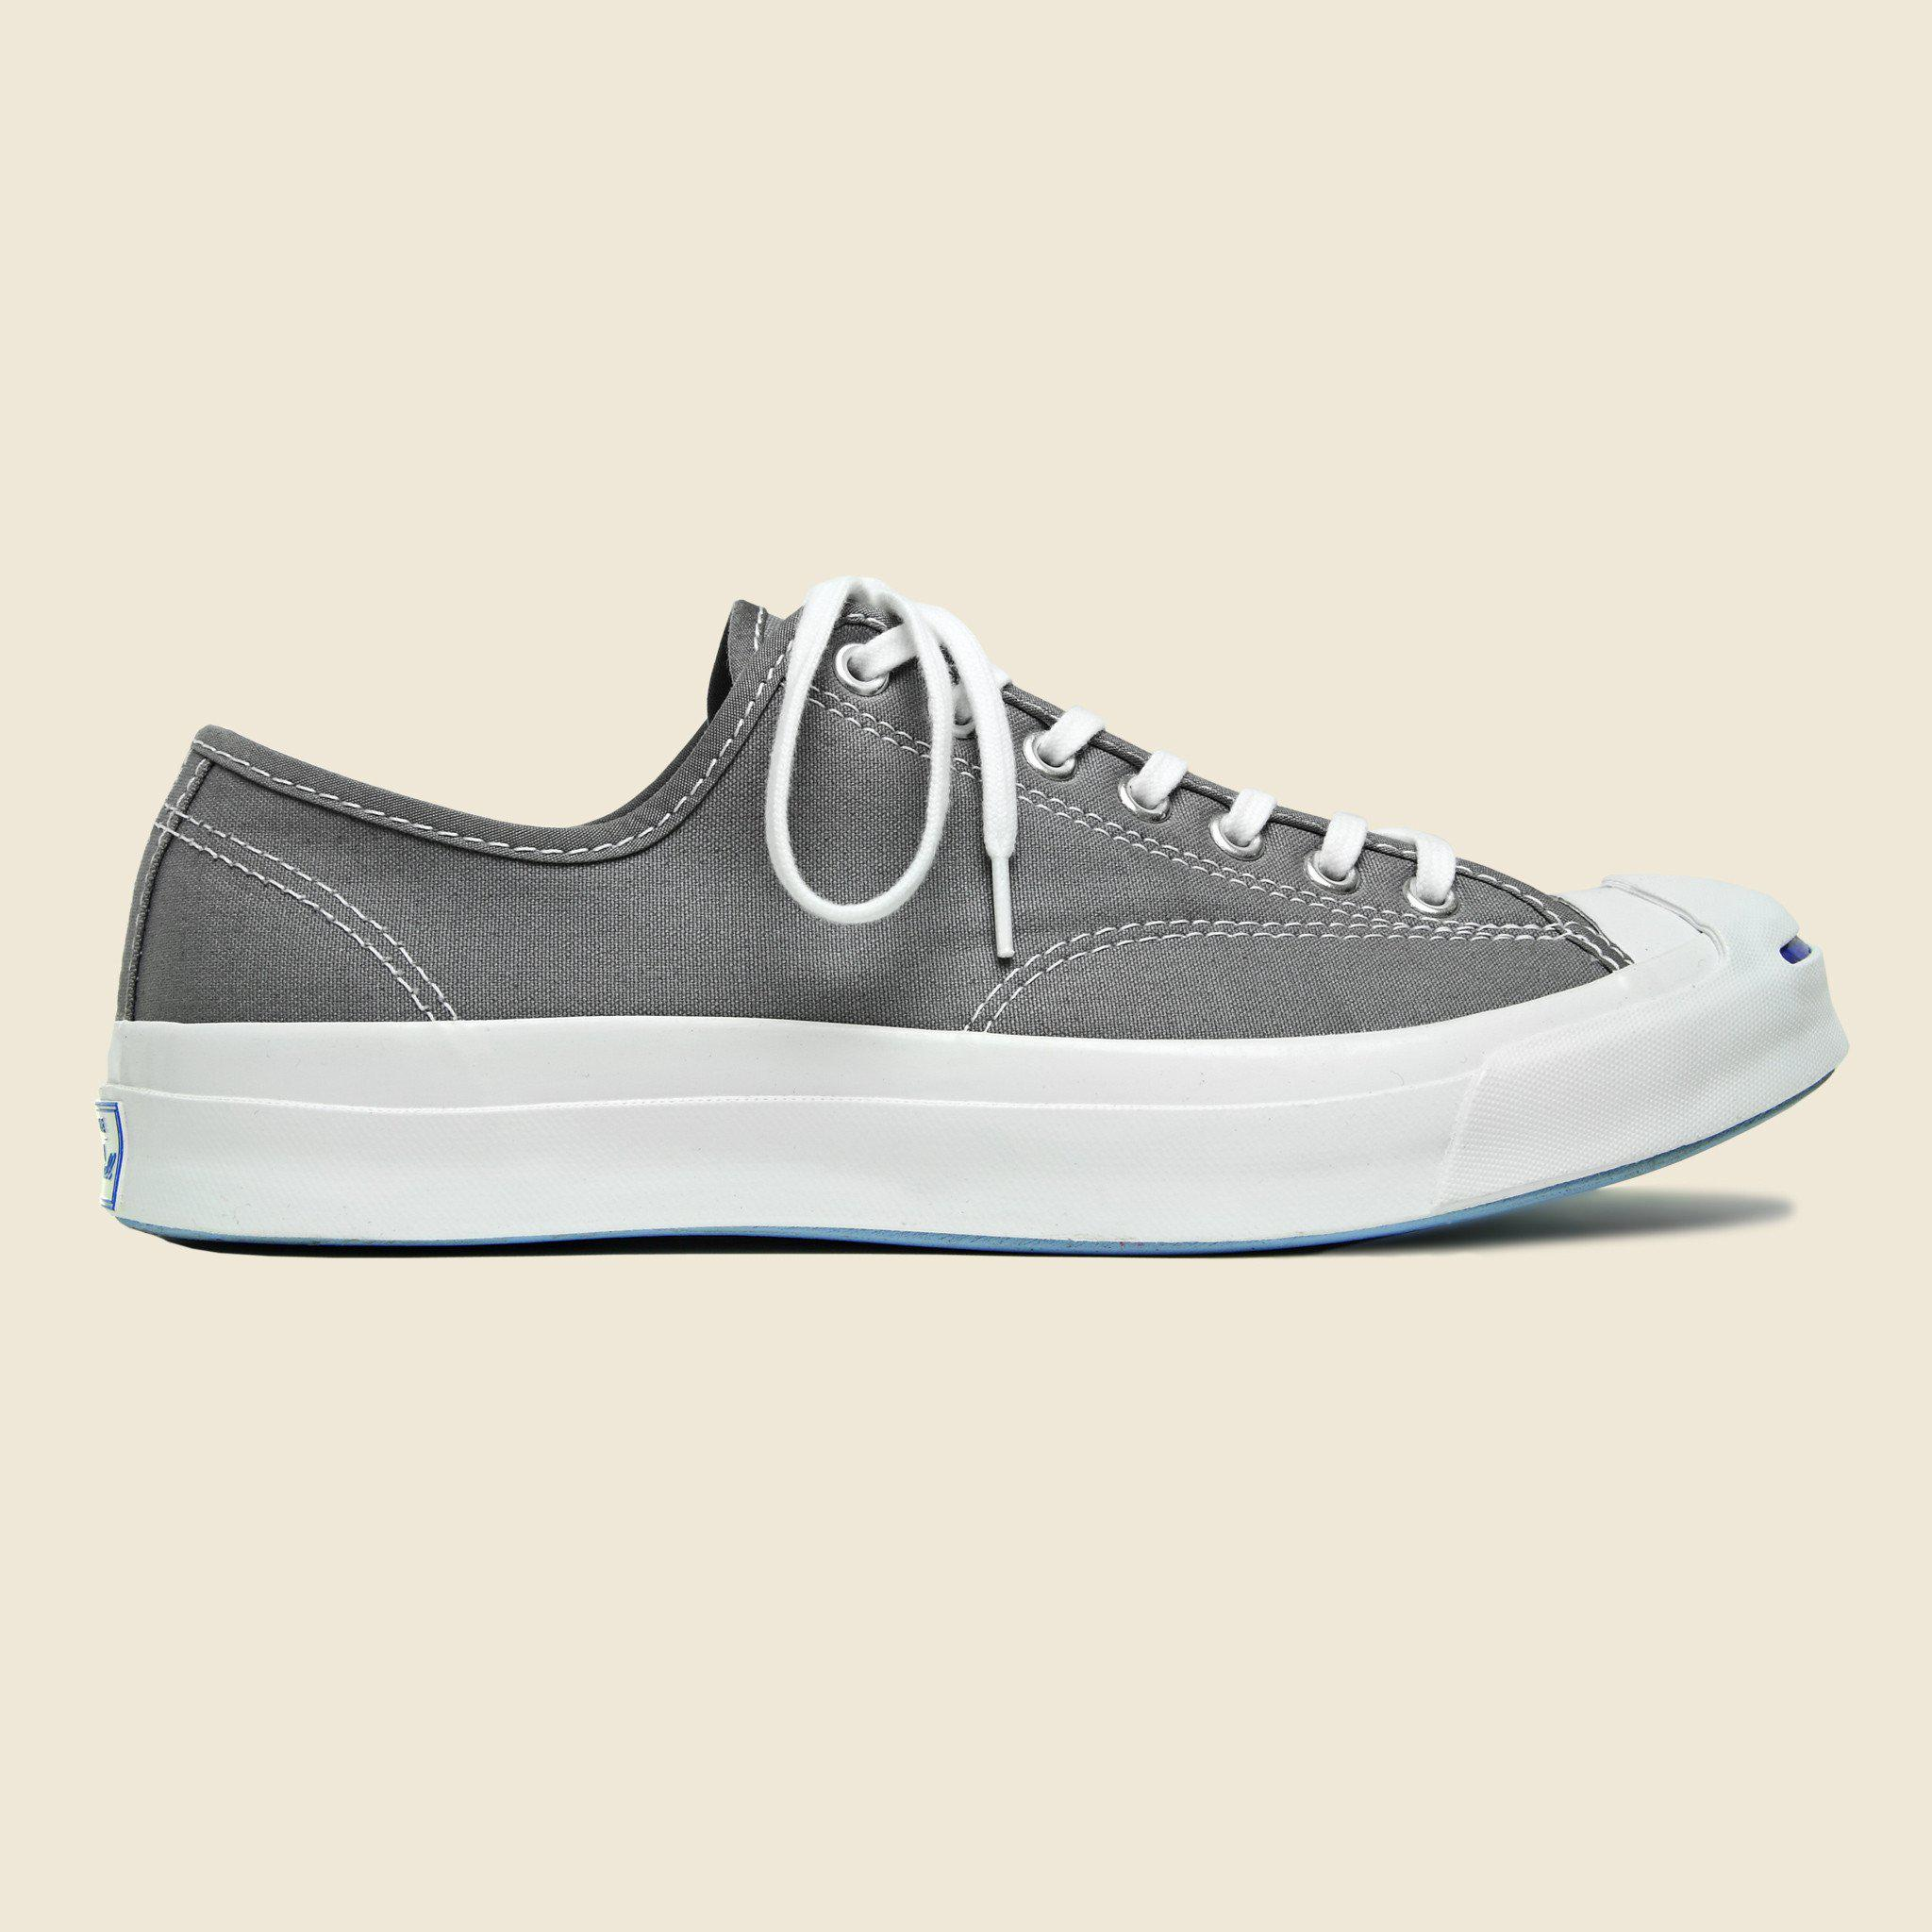 859a3423f28b69 Lyst - Converse Jack Purcell Signature - Mason in Gray for Men